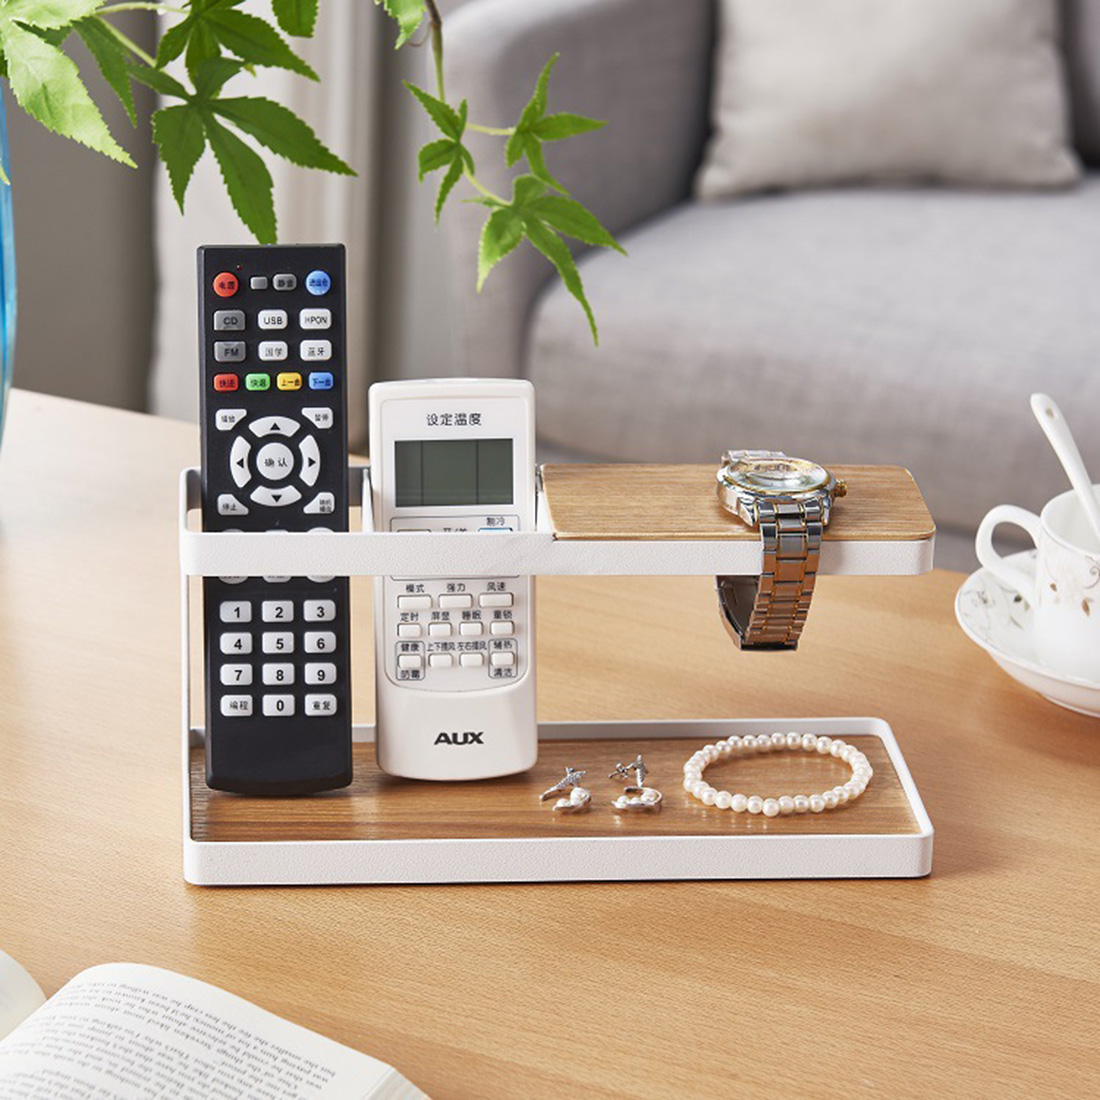 Desktop Storage Rack Multi Function Holder Supporter Organizer Jewellery Stand For Living Room Office Home Black White in Home Office Storage from Home Garden